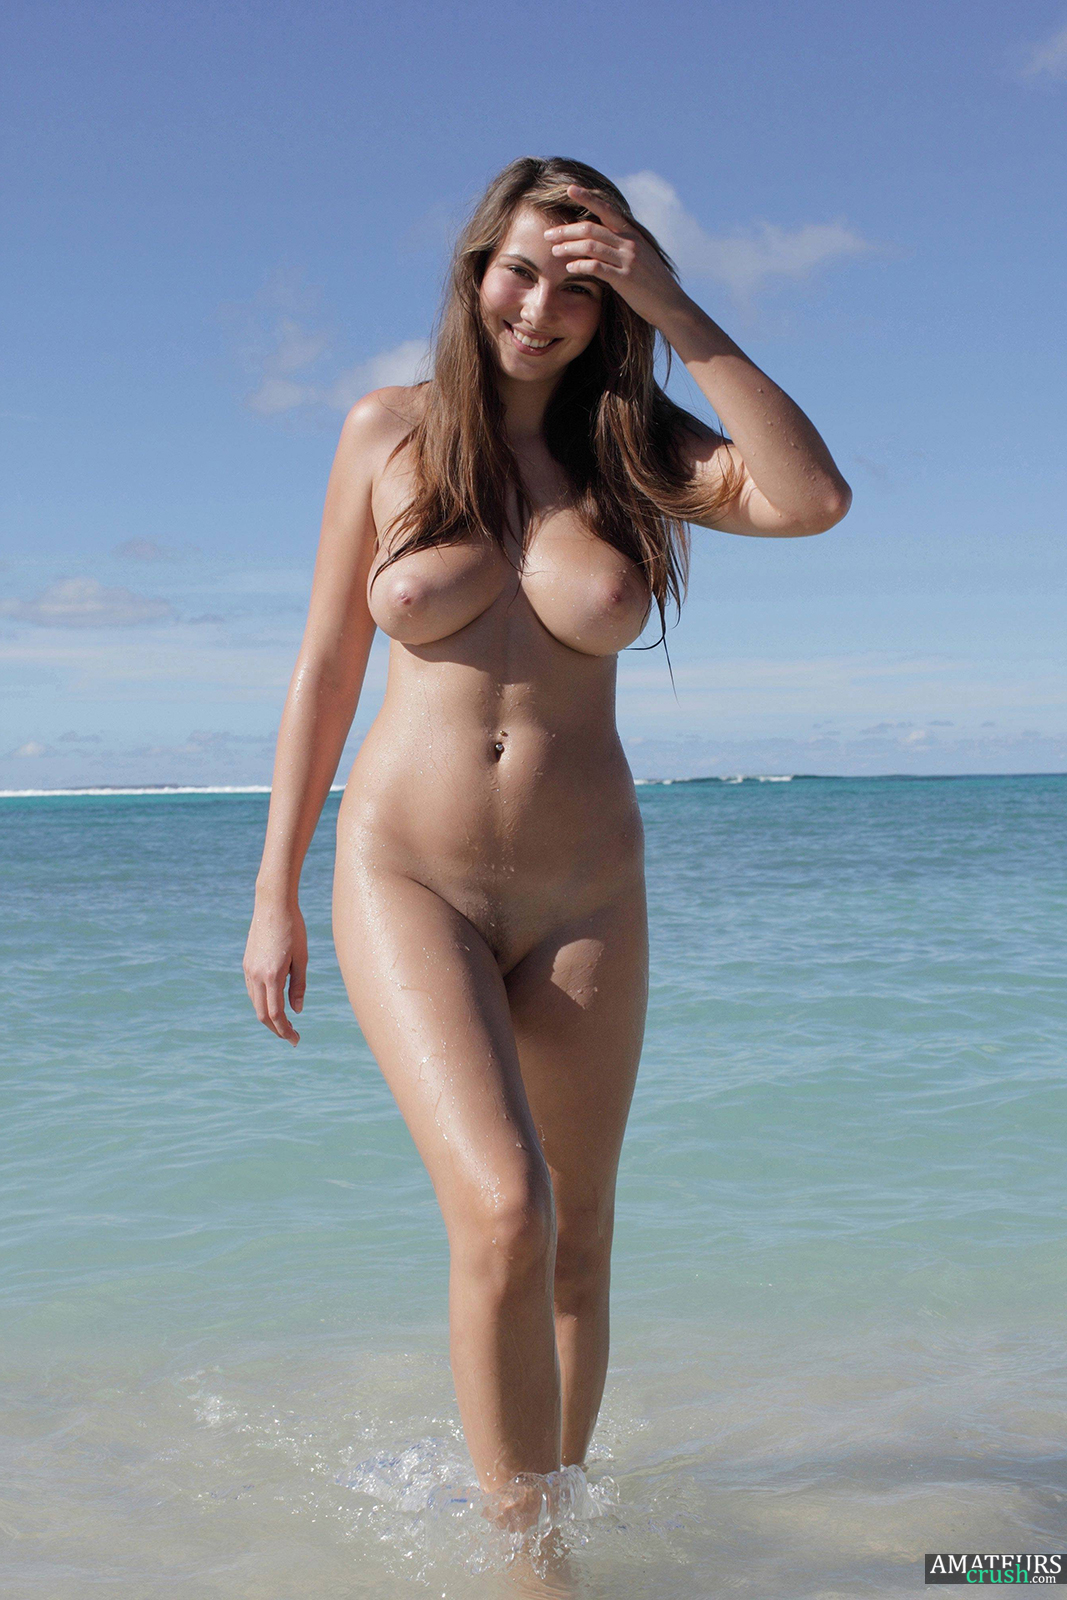 Girl topless on beach in australia